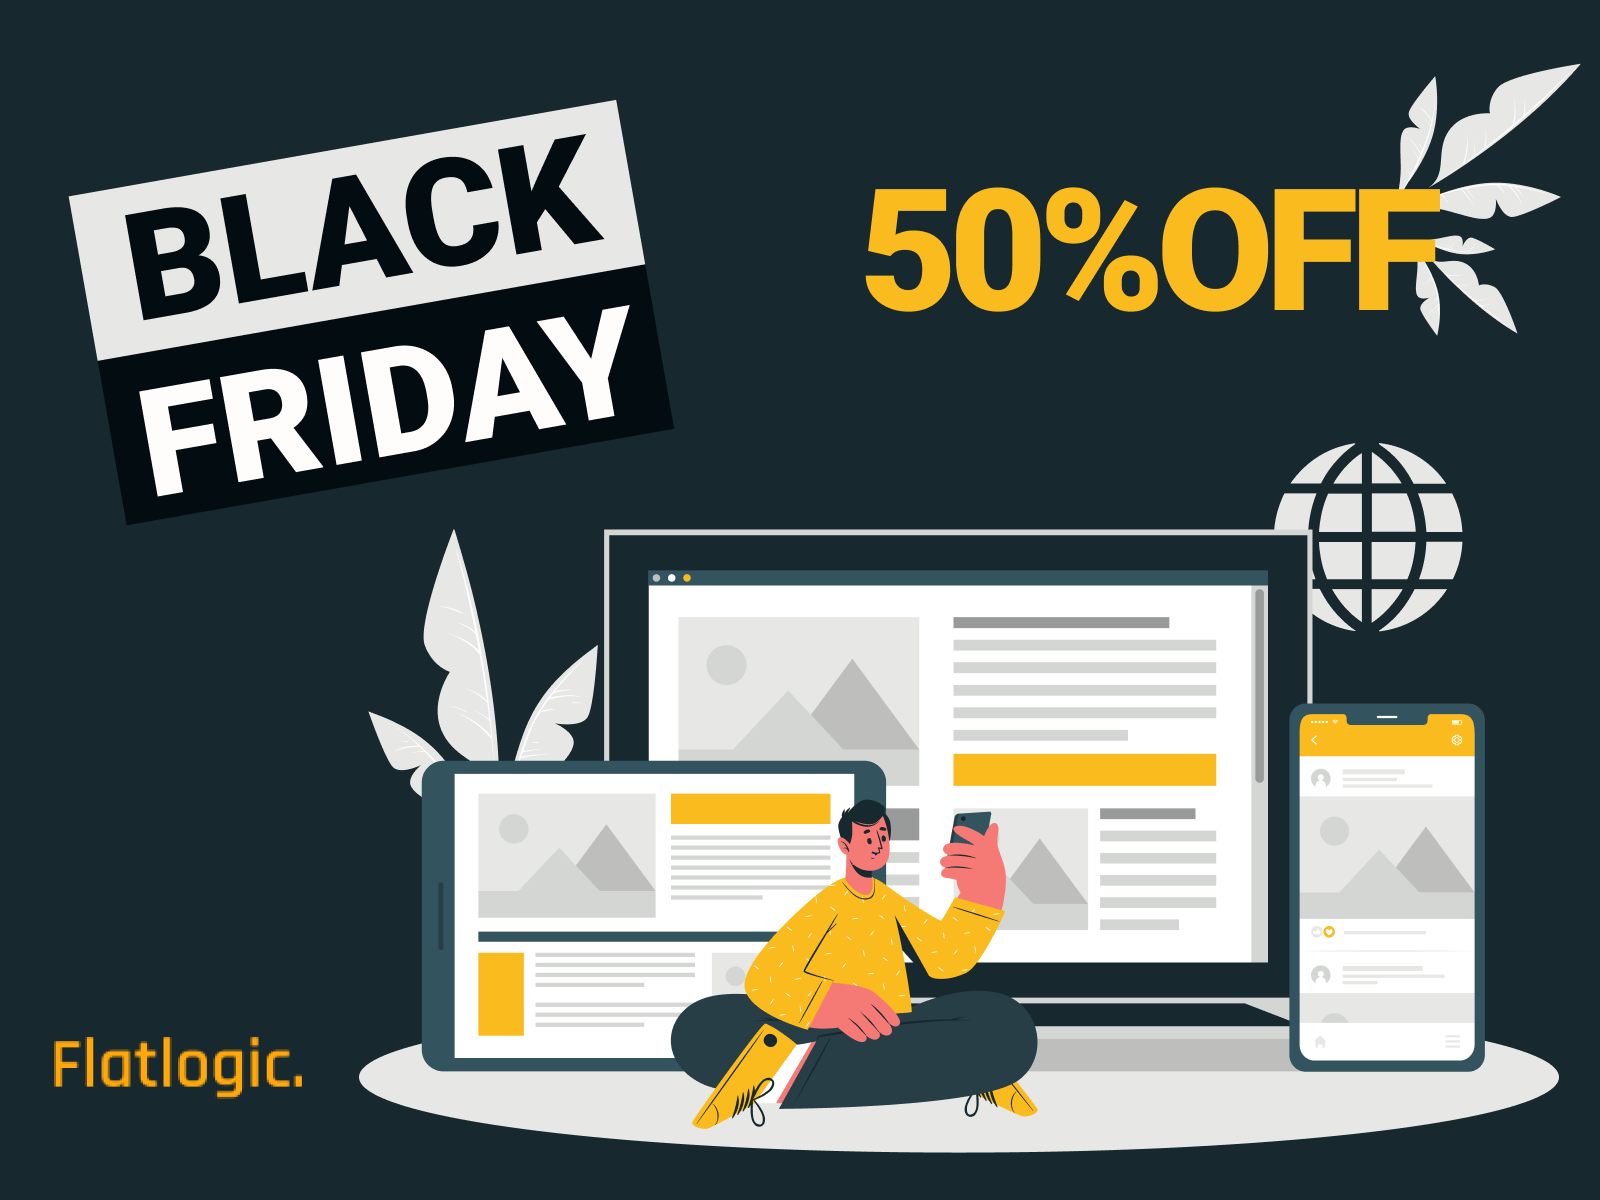 OMG! Black Friday is coming! 50% Off All Templates.